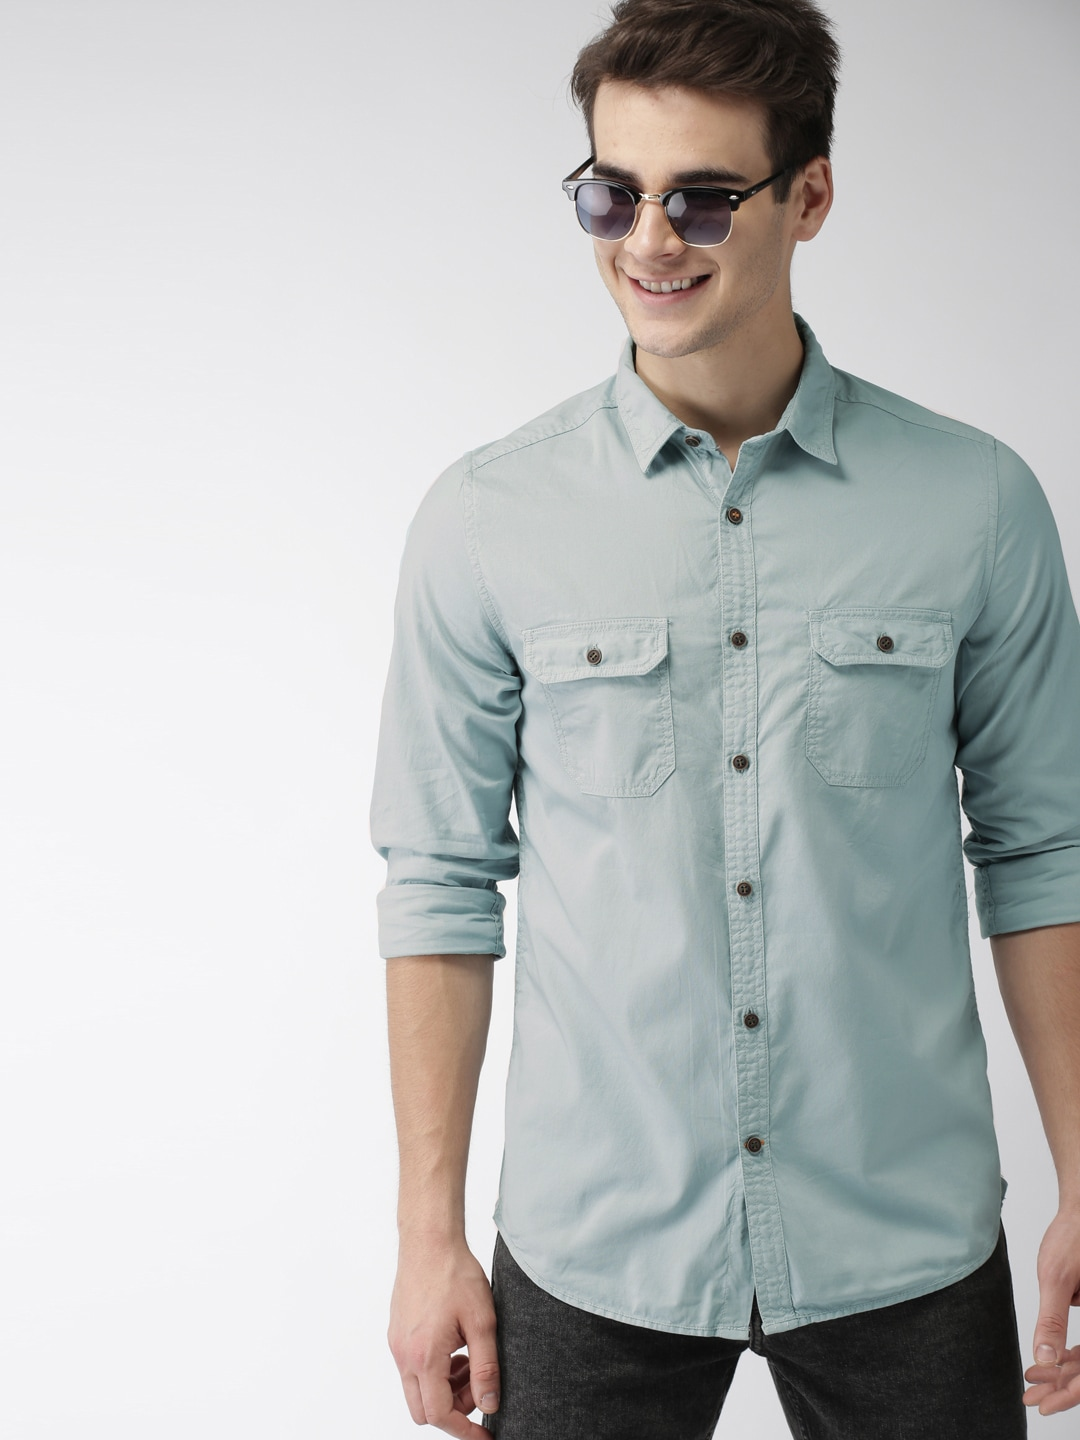 b4f5407bbd388 Men Casual Wear Shirt Shirts - Buy Men Casual Wear Shirt Shirts online in  India